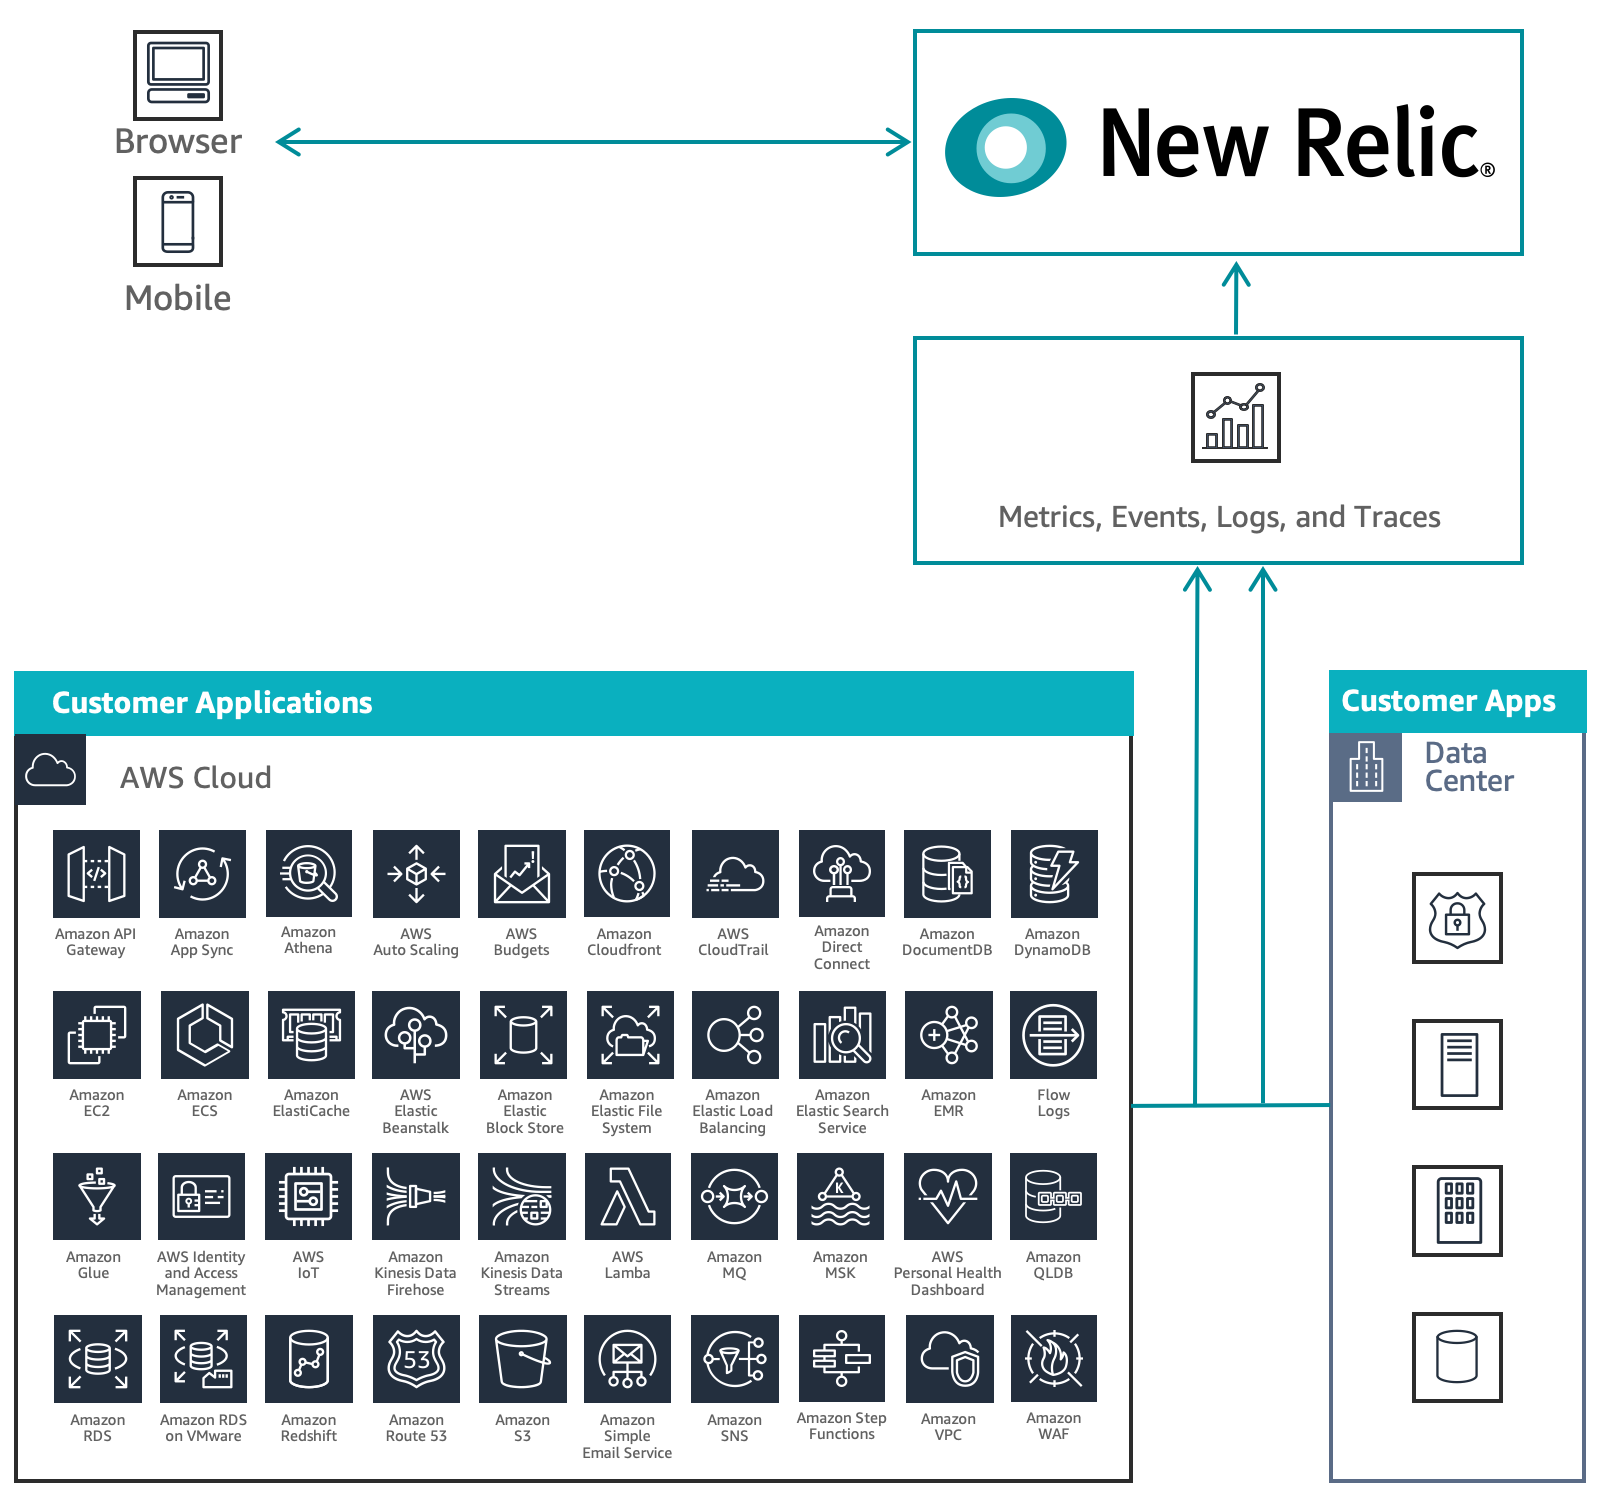 New Relic Solution Diagram Workflow